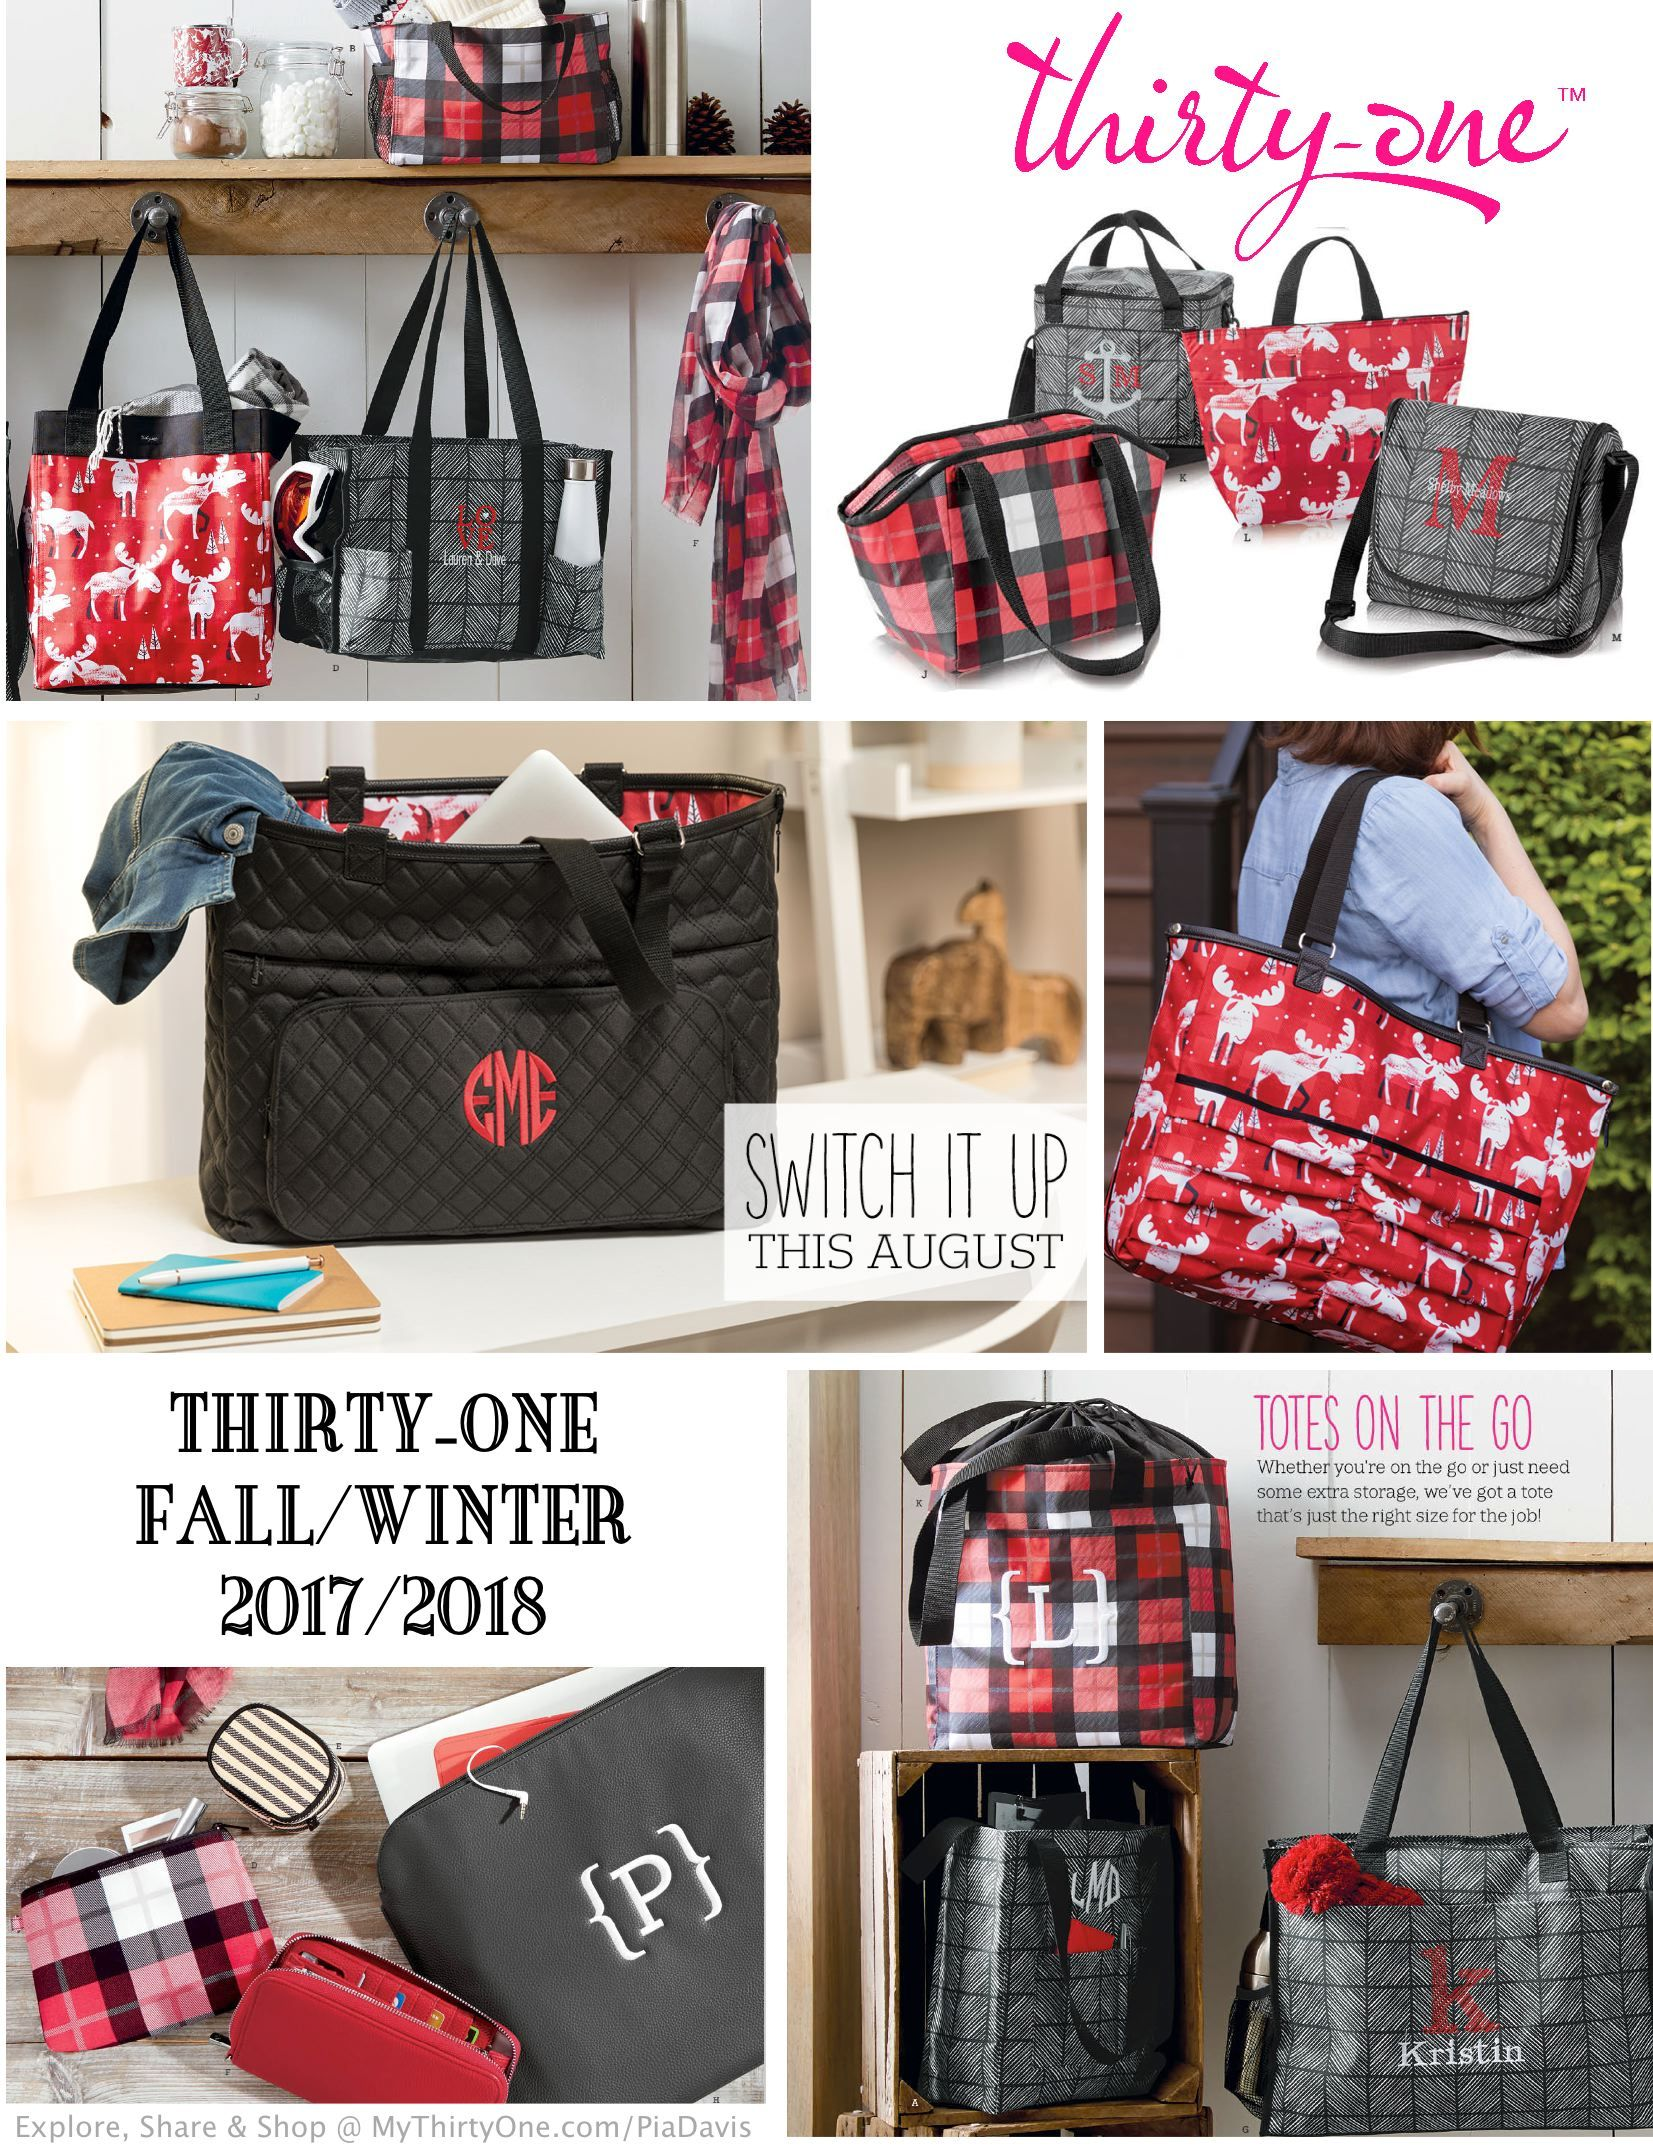 dd256842d562 LOVE the new Thirty-One prints for the 2017-2018 Fall-Winter season.  Moosin  Around   Chevron Squares are great additions to Charcoal Crosshatch    Check ...